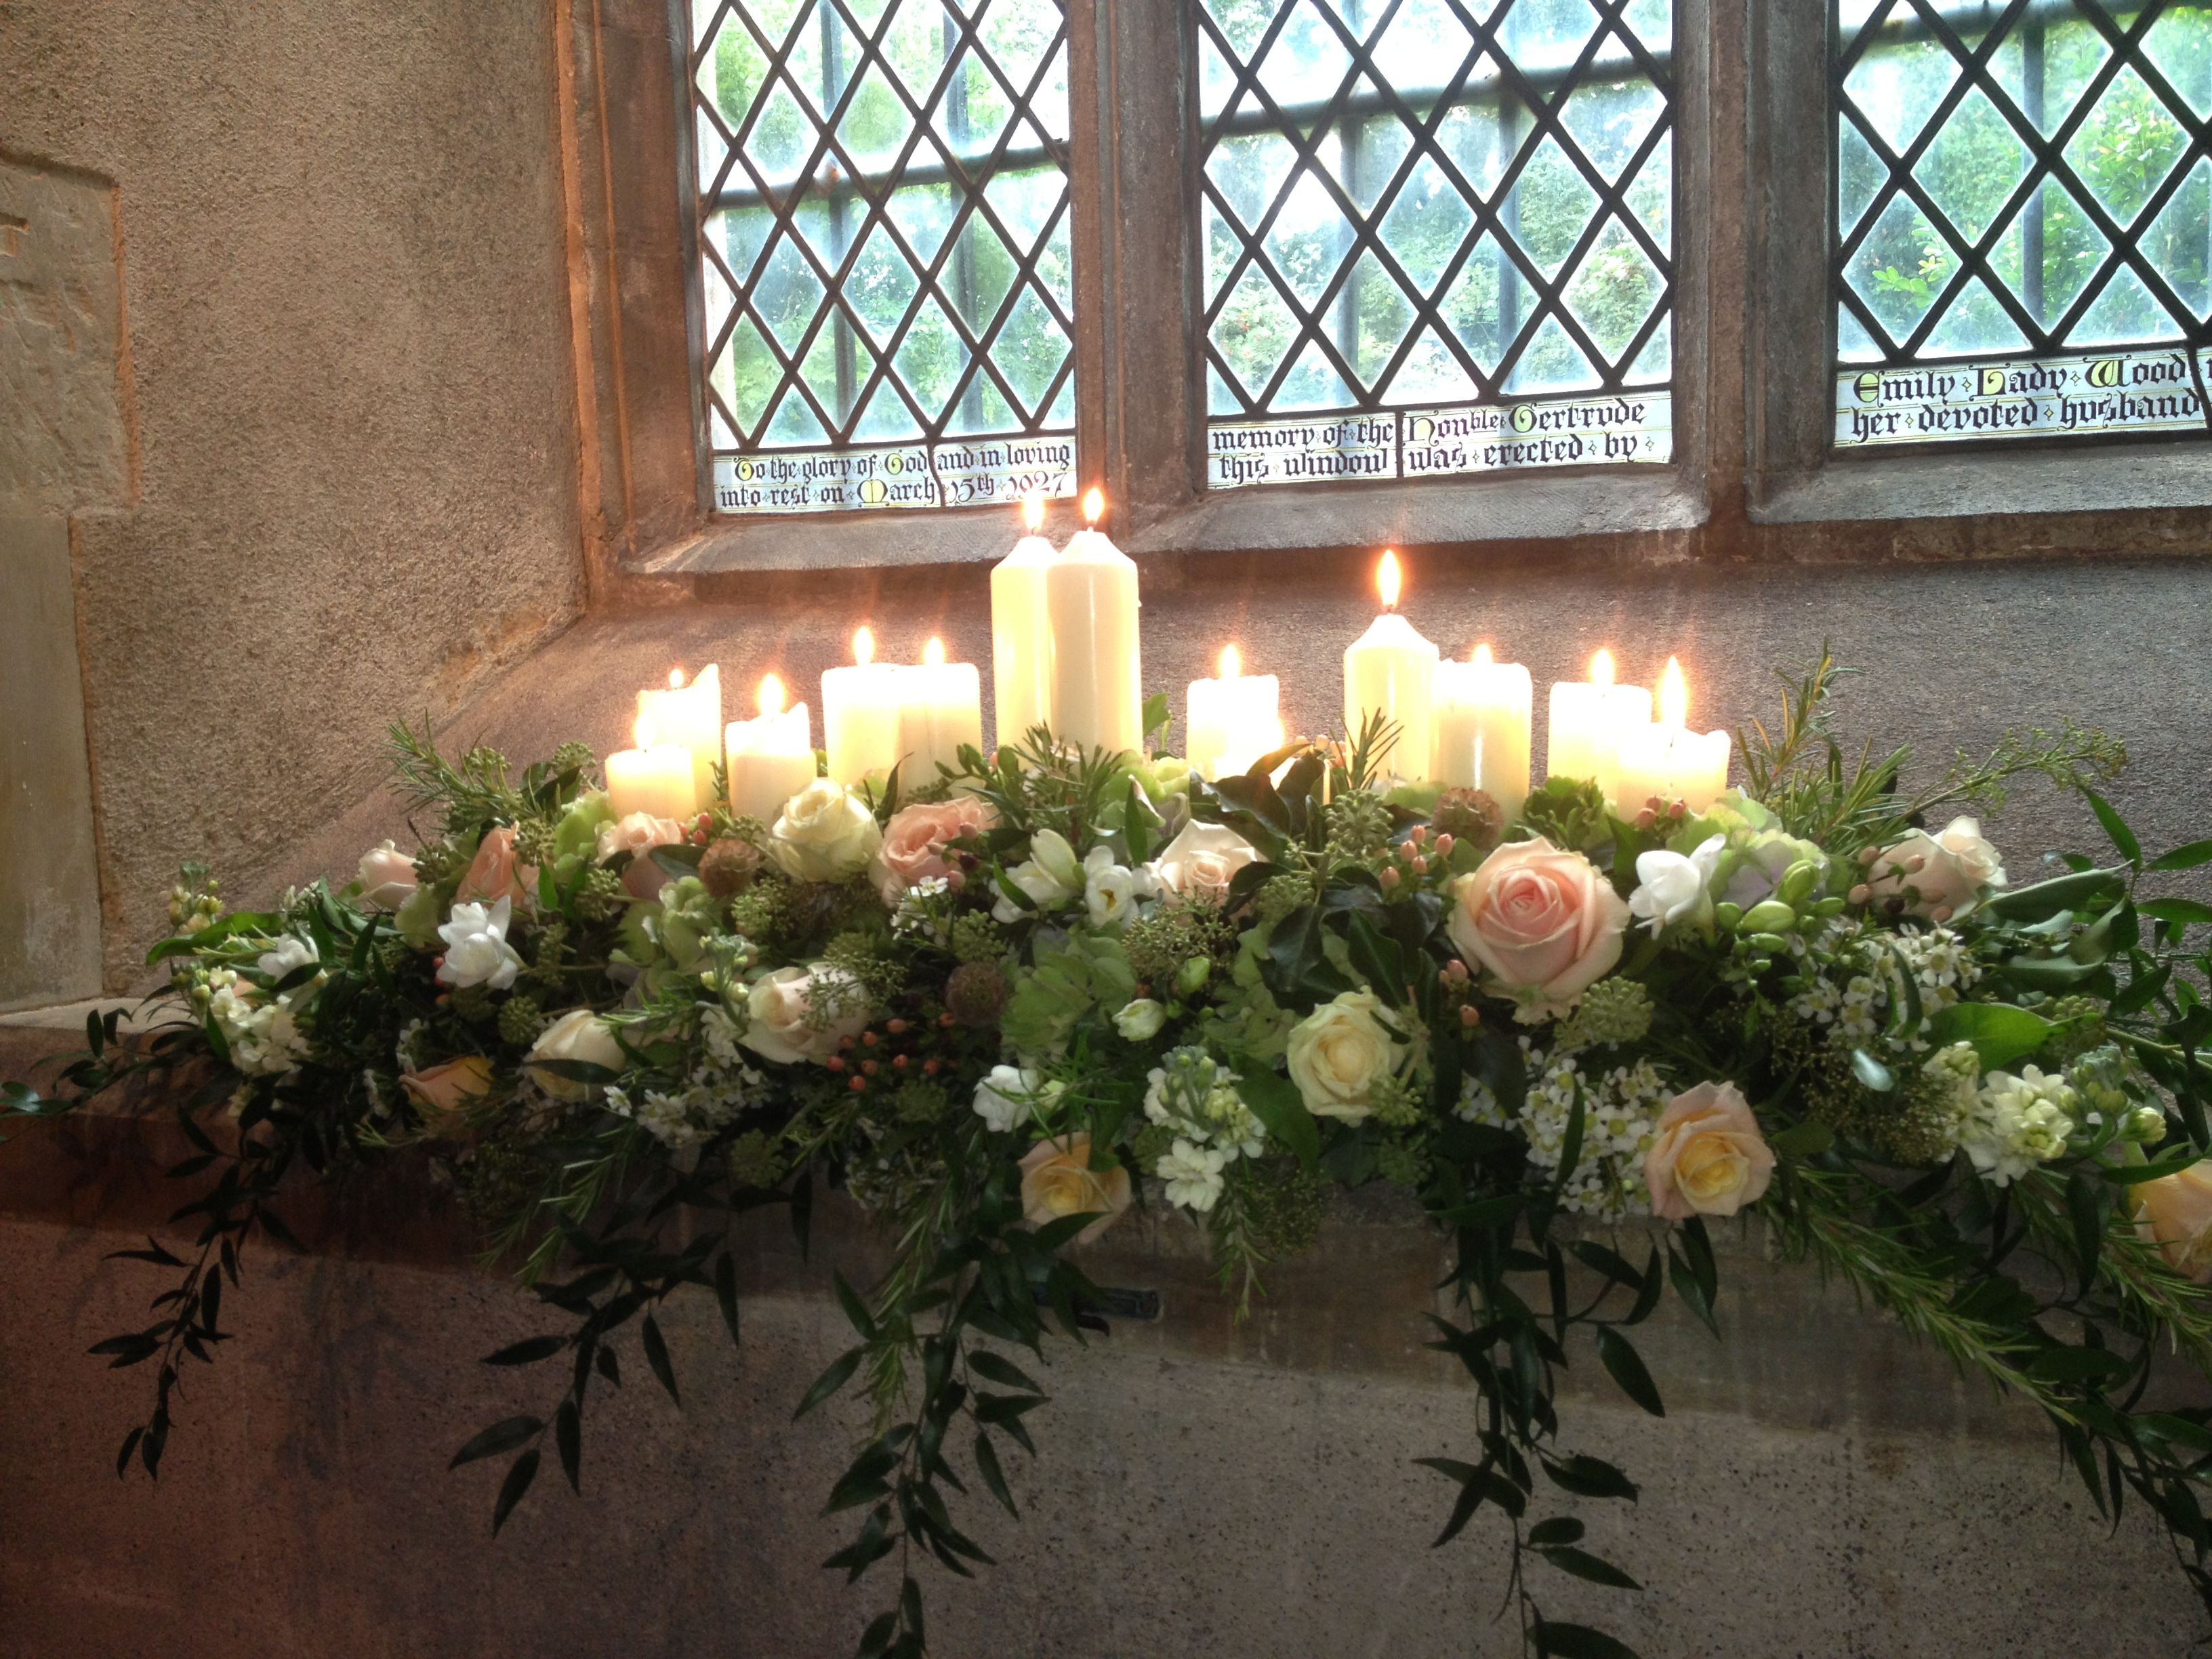 Windowsill Dressed With Candles And Cascading Flowers Church Flowers Church Wedding Flowers Wedding Candles Church